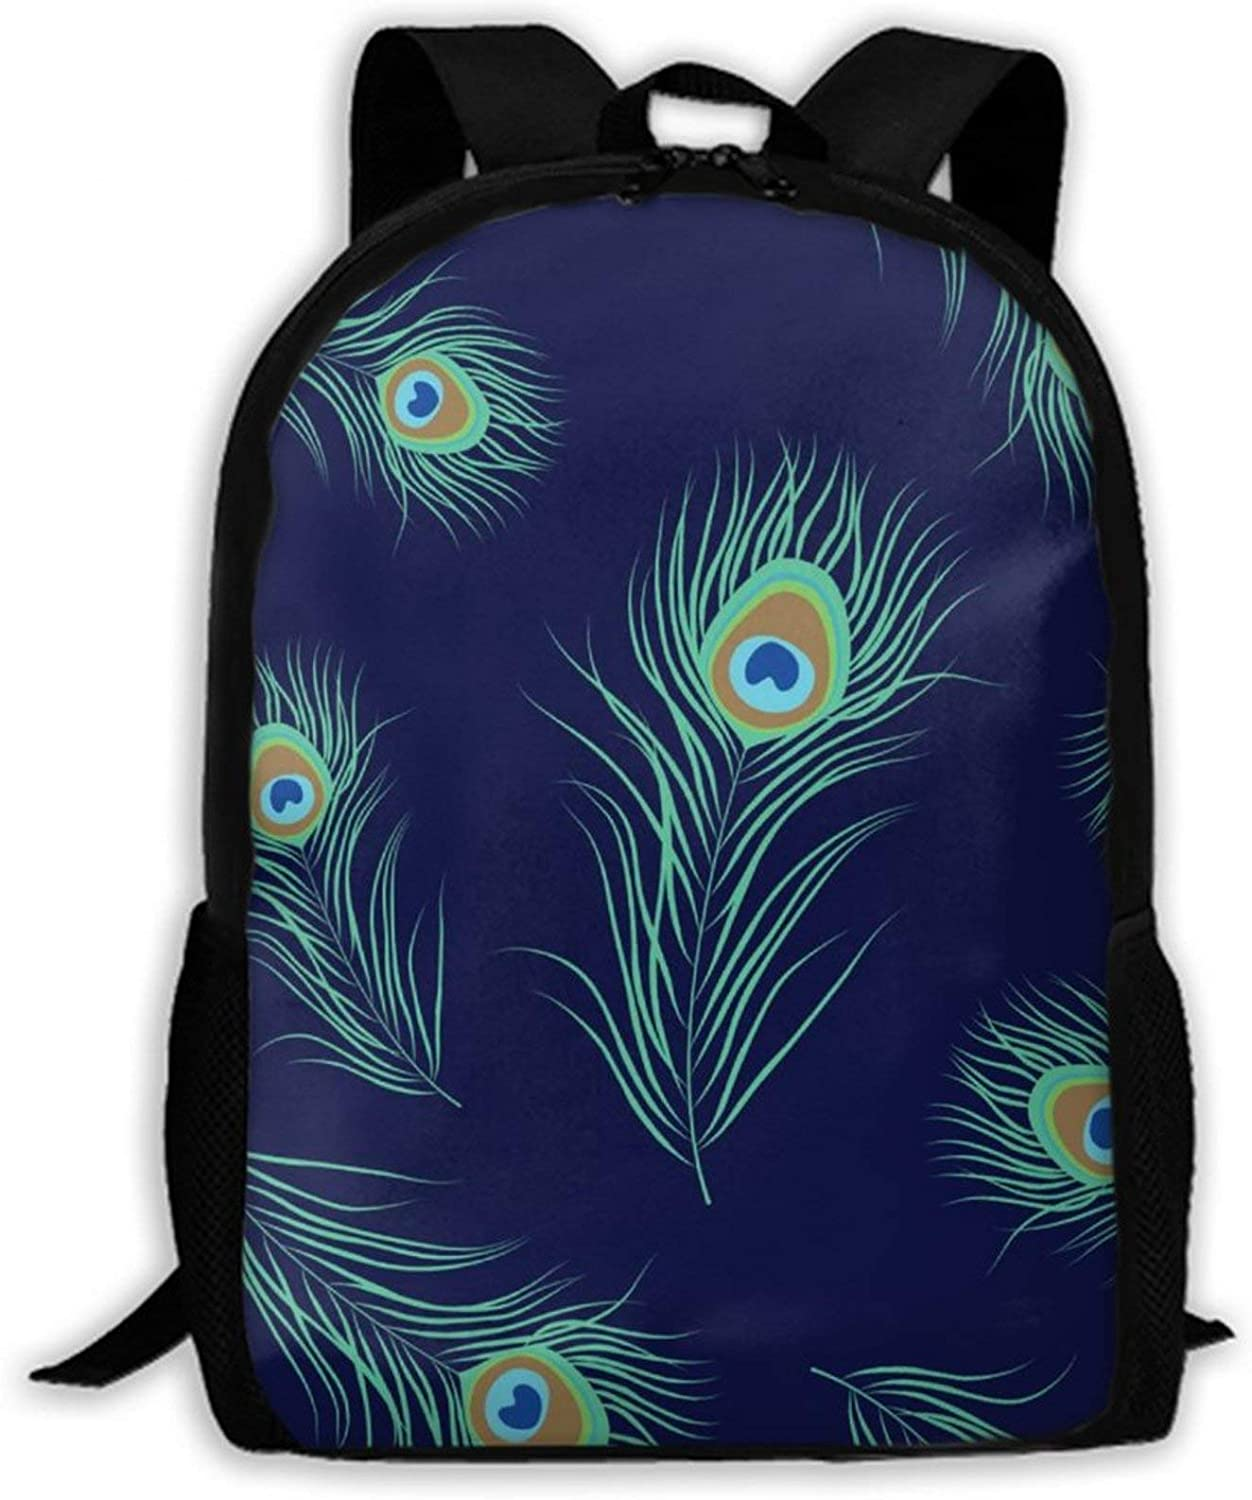 NiYoung 15 Inch Computer Everyday Backpacks with Pocket One Size Lightweight Strong 600-Denier Fabric (Peacock Feather)